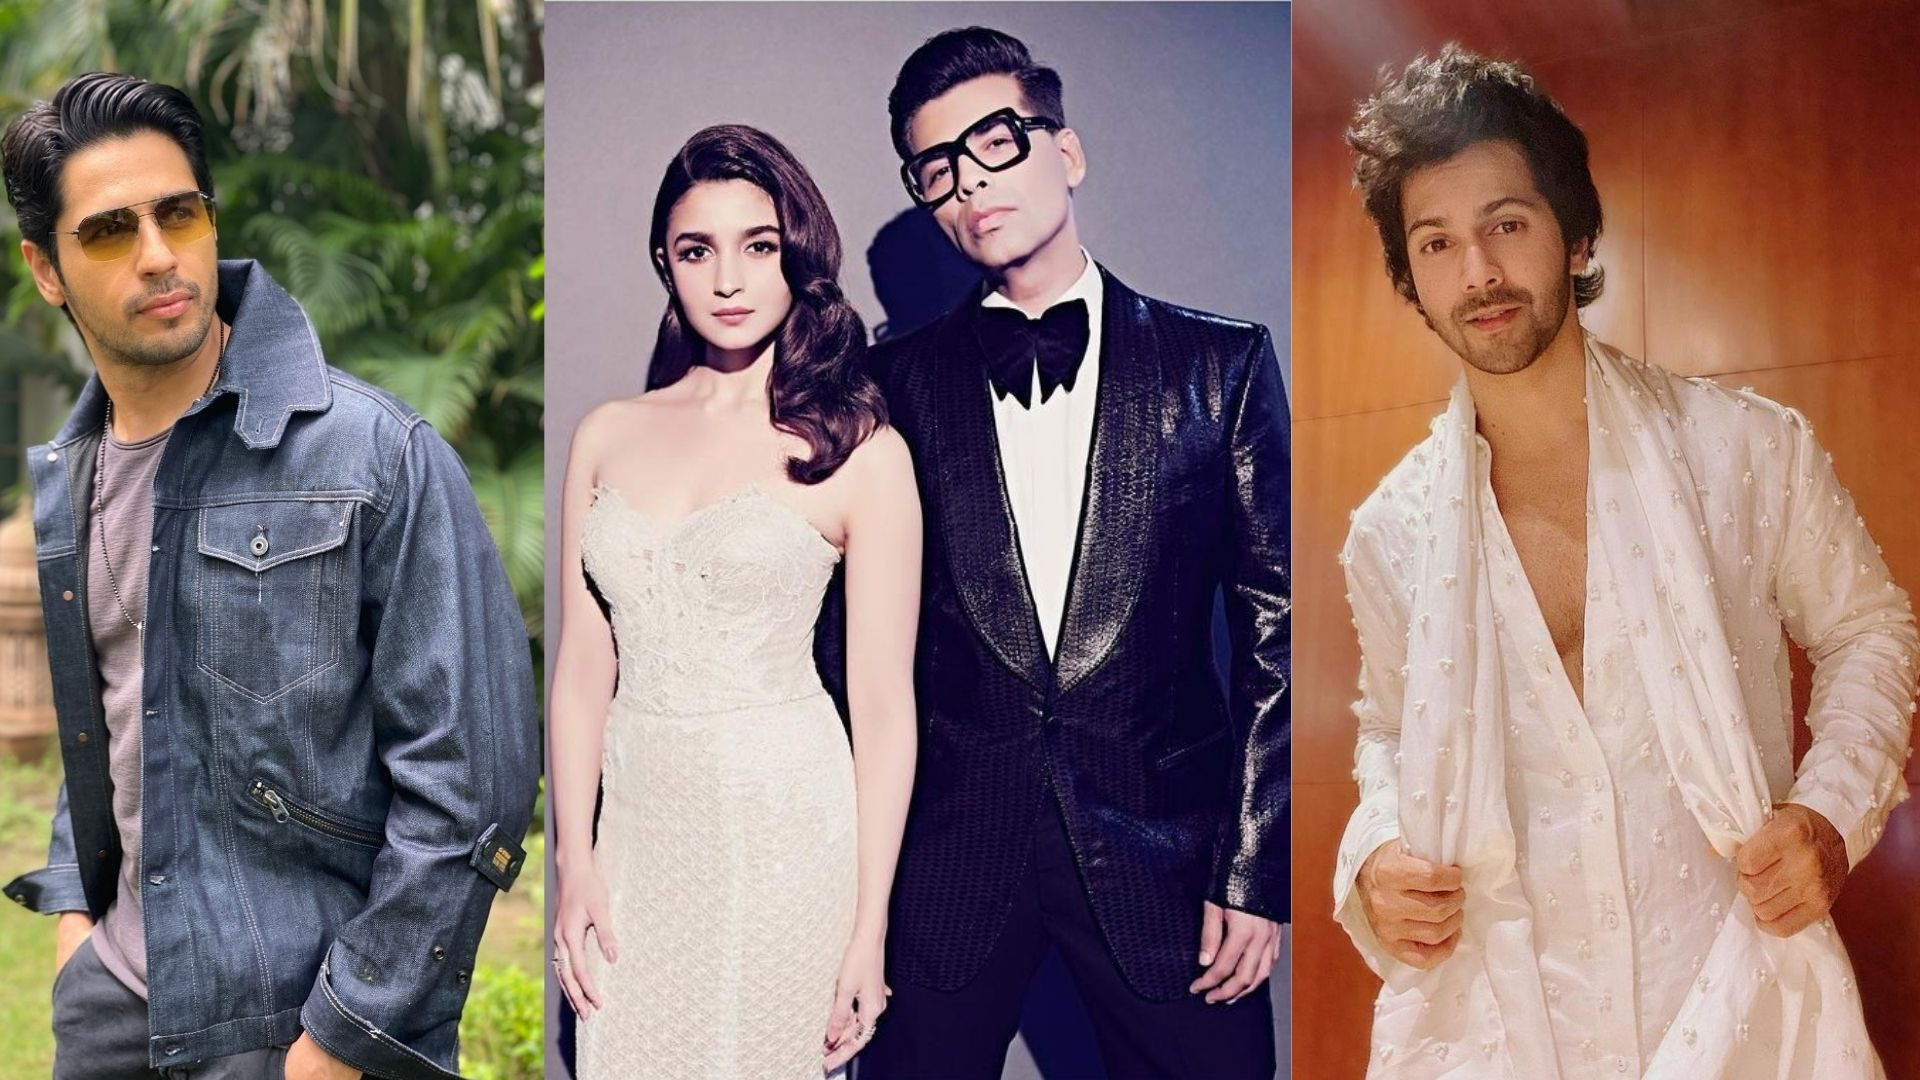 Student Of The Year Marks 9 Years: Alia Bhatt And Karan Johar Find A Cool Way To Connect With Students Varun Dhawan And Sidharth Malhotra